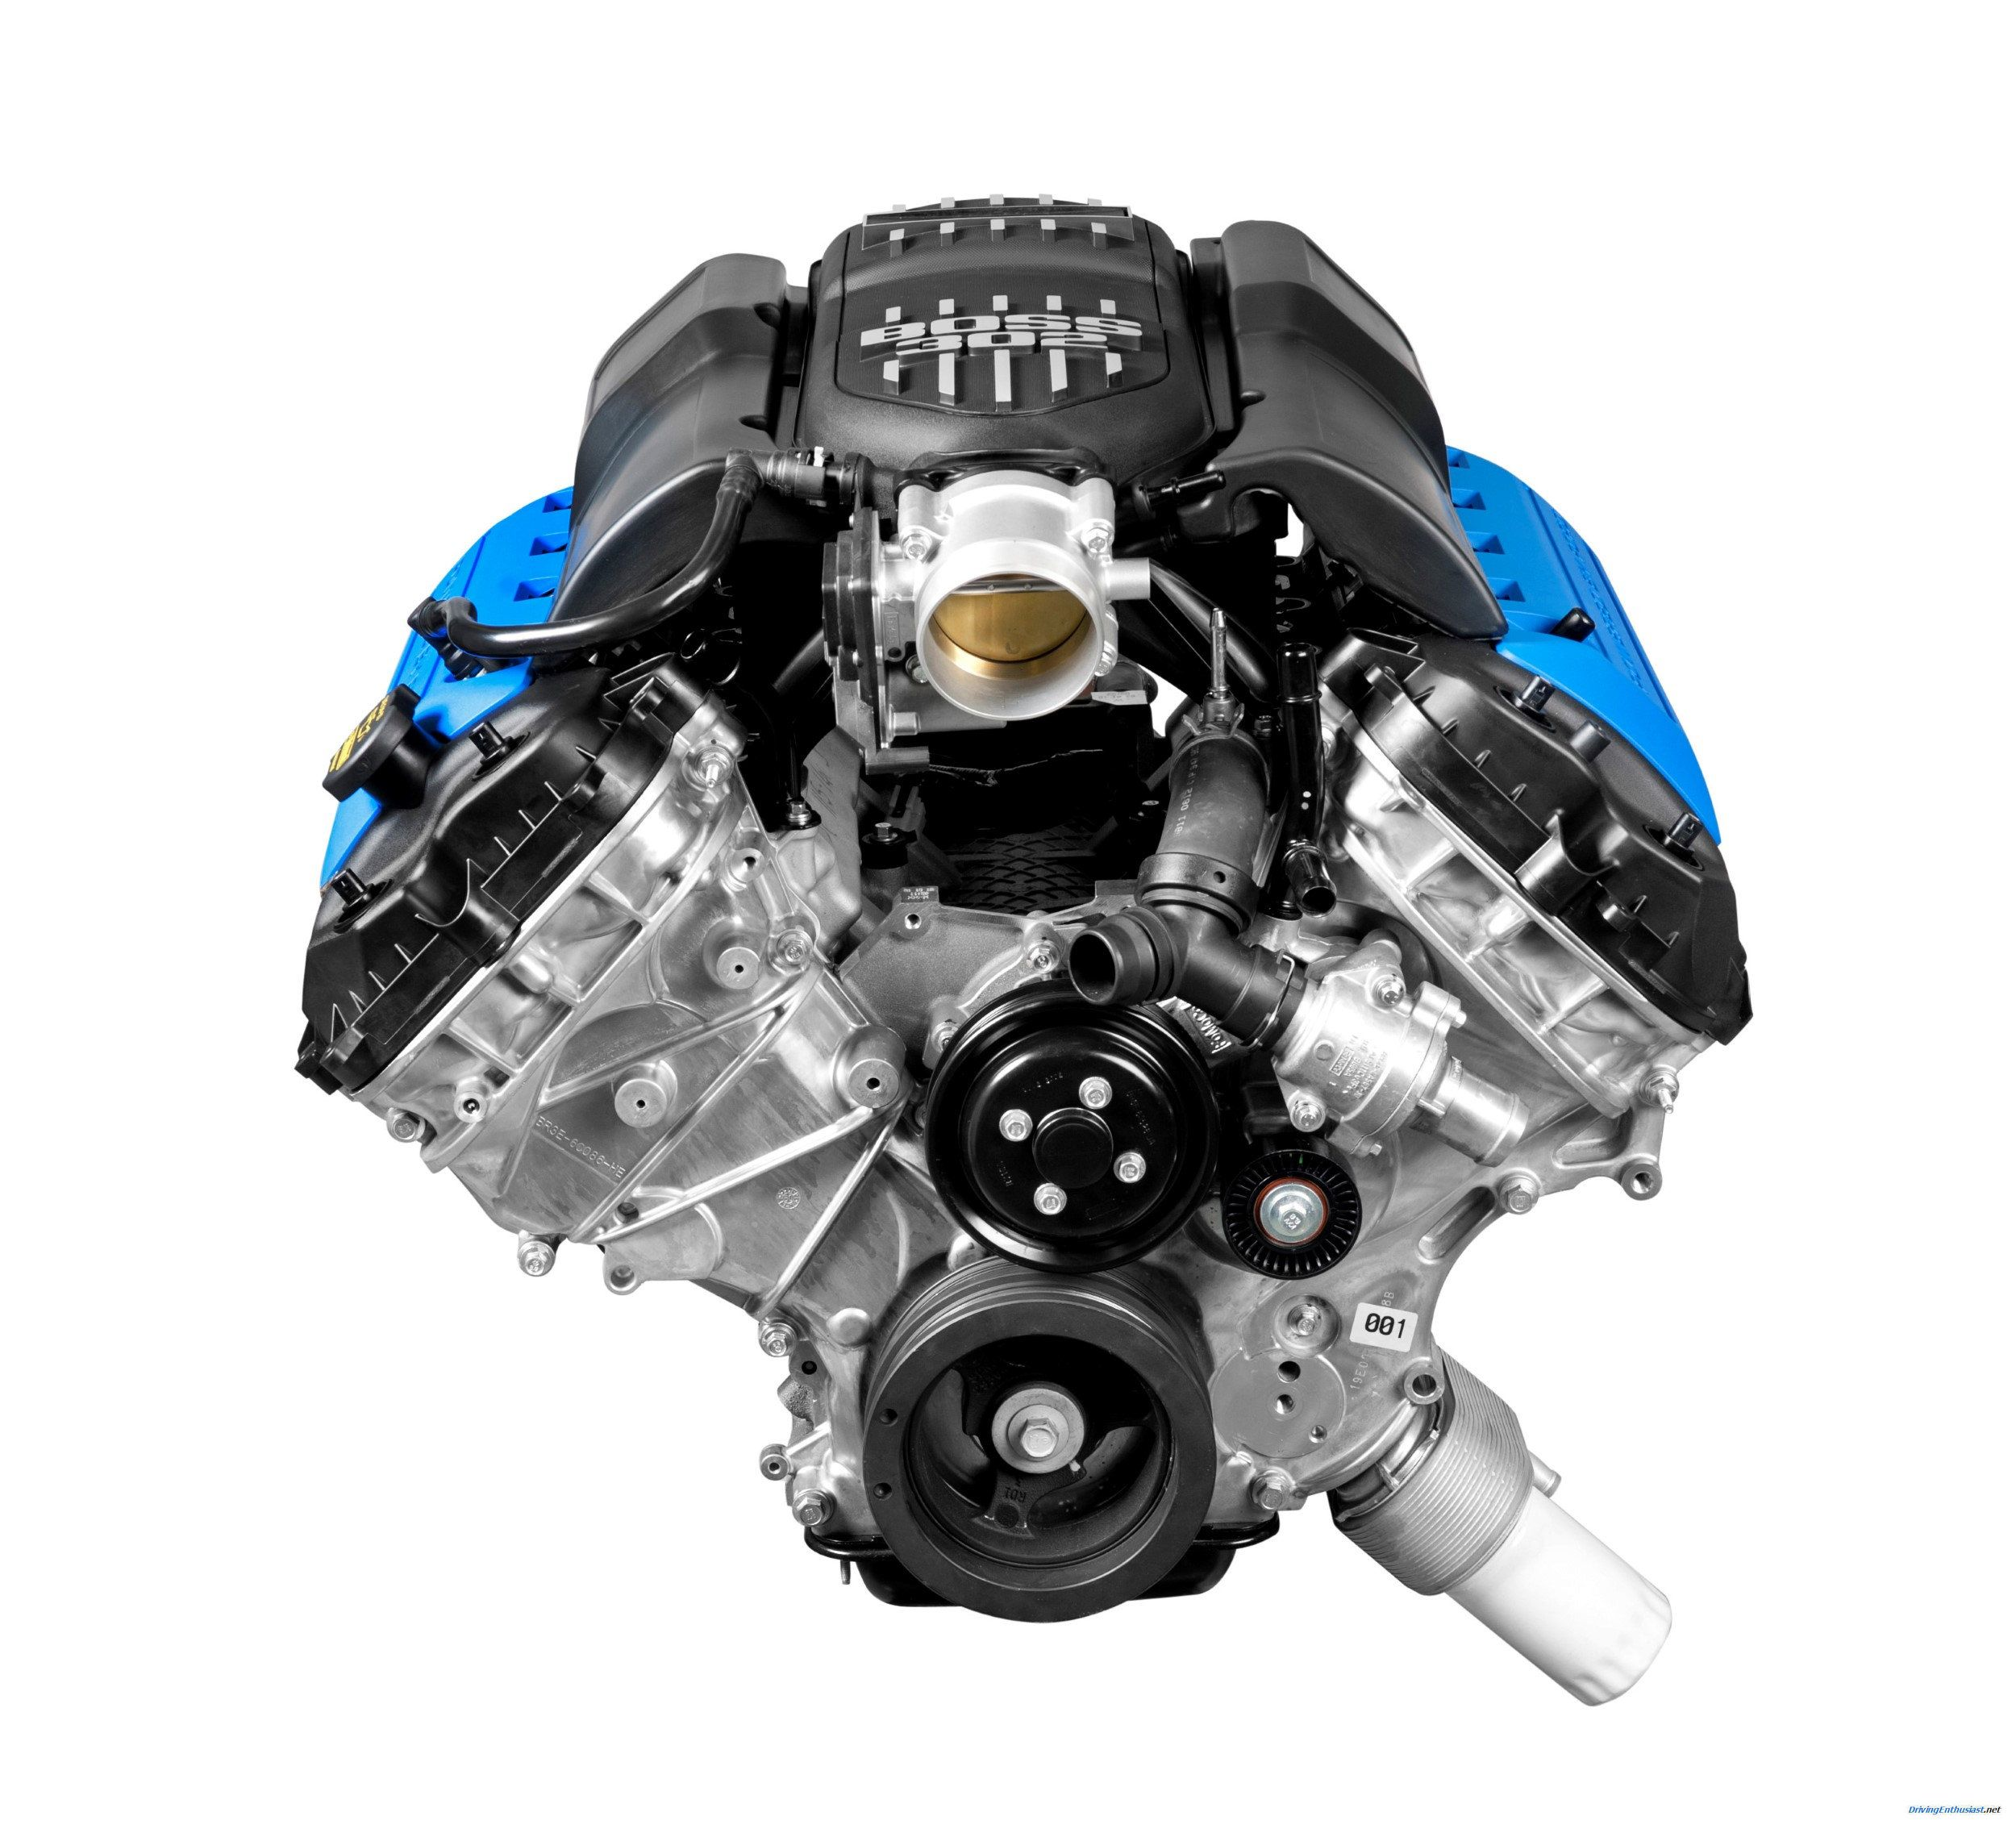 2012 Ford Mustang Boss 302 Engine